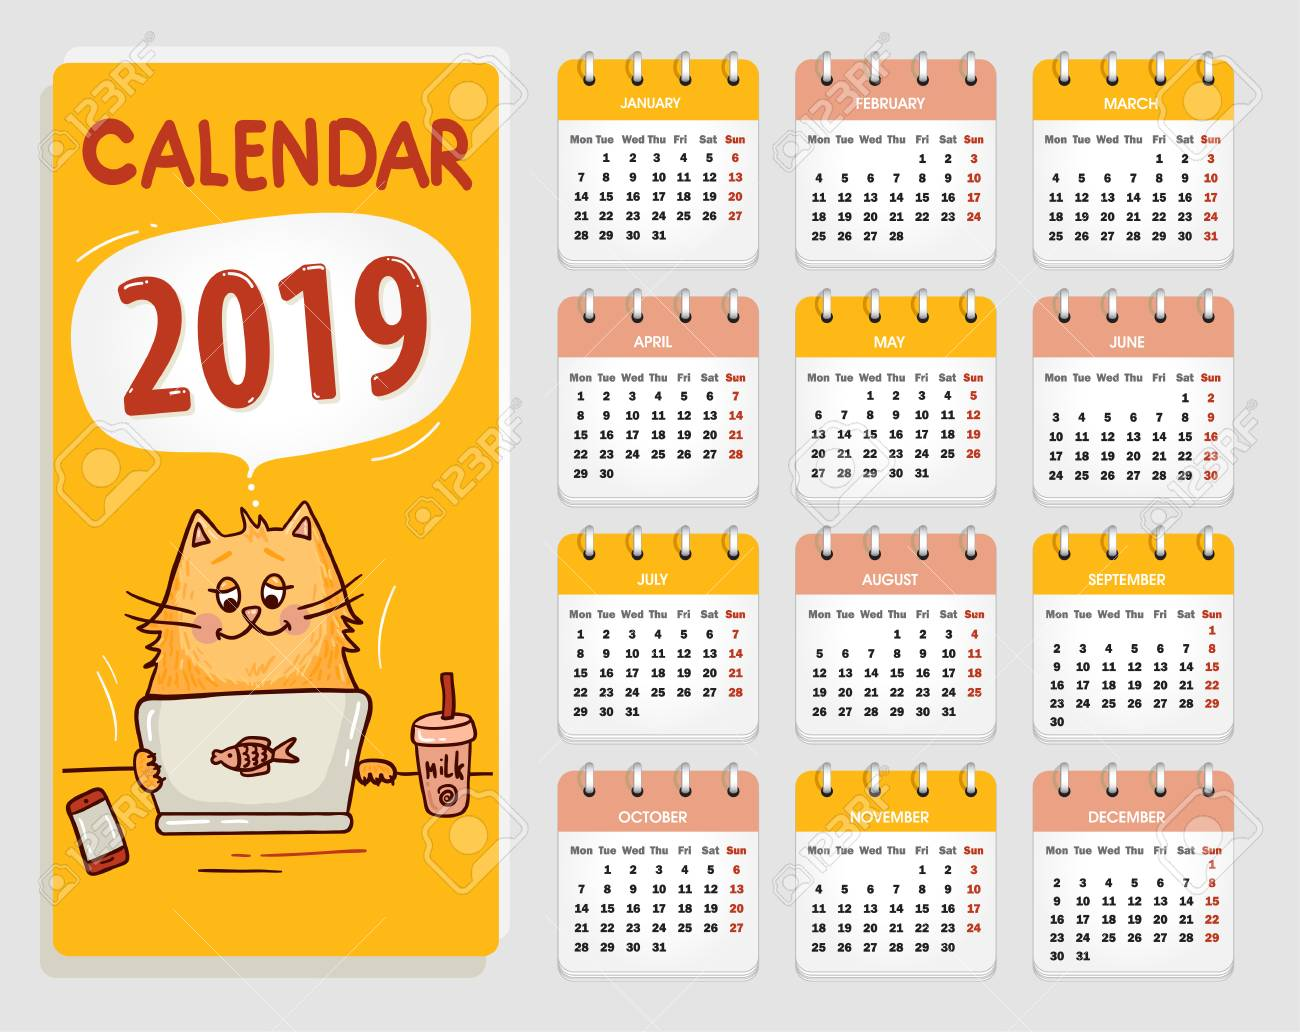 Edit Calendar 2019 Vector Calendar 2019 With Cute Cat, All Elements Are In Separate